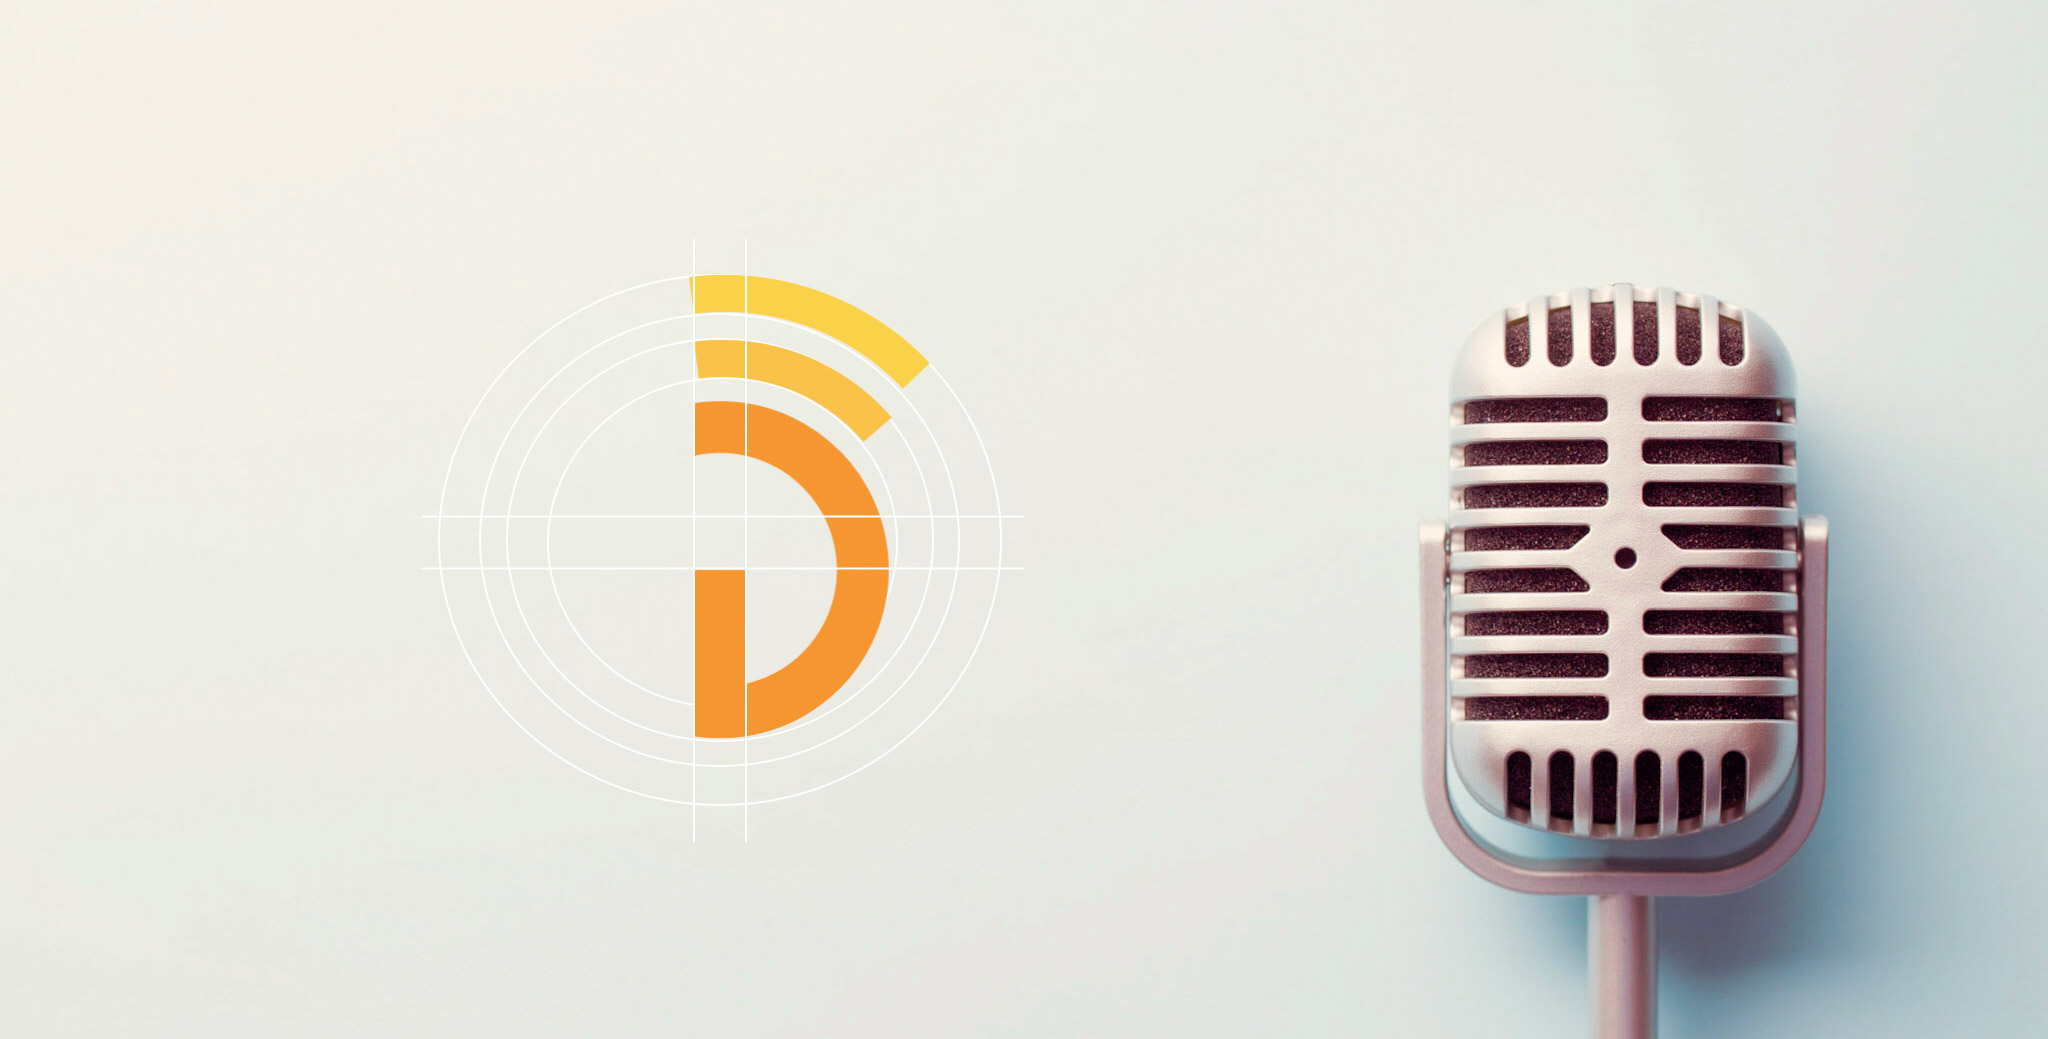 """- This is a mockup of the new logo design for Dylan Grassl - a voice over artist out of Chicago. The mockup shows the grid used to create the logo. The logo itself, is a place on the initials of the artist """"DG"""" - that has radio waves coming from it."""